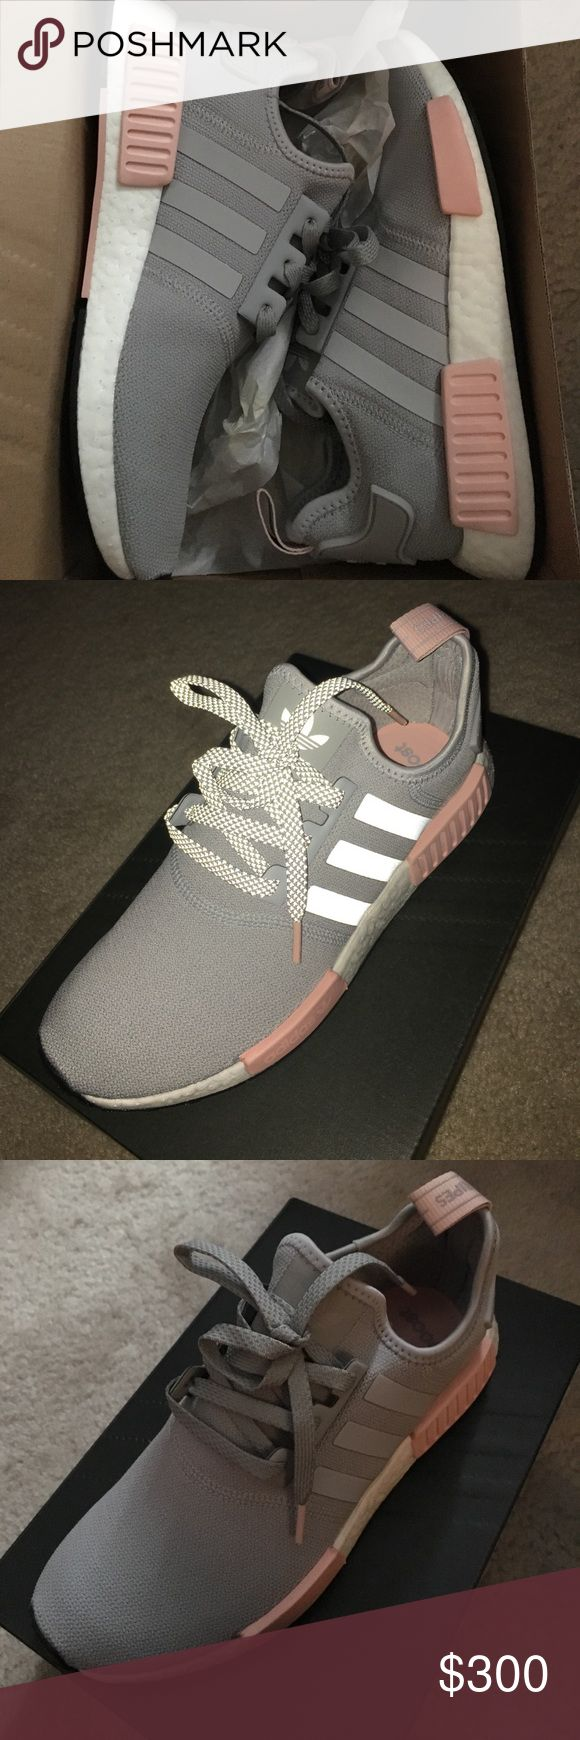 Adidas nmd_R1 W Grey pink vapor nmd Adidas Shoes Athletic Shoes